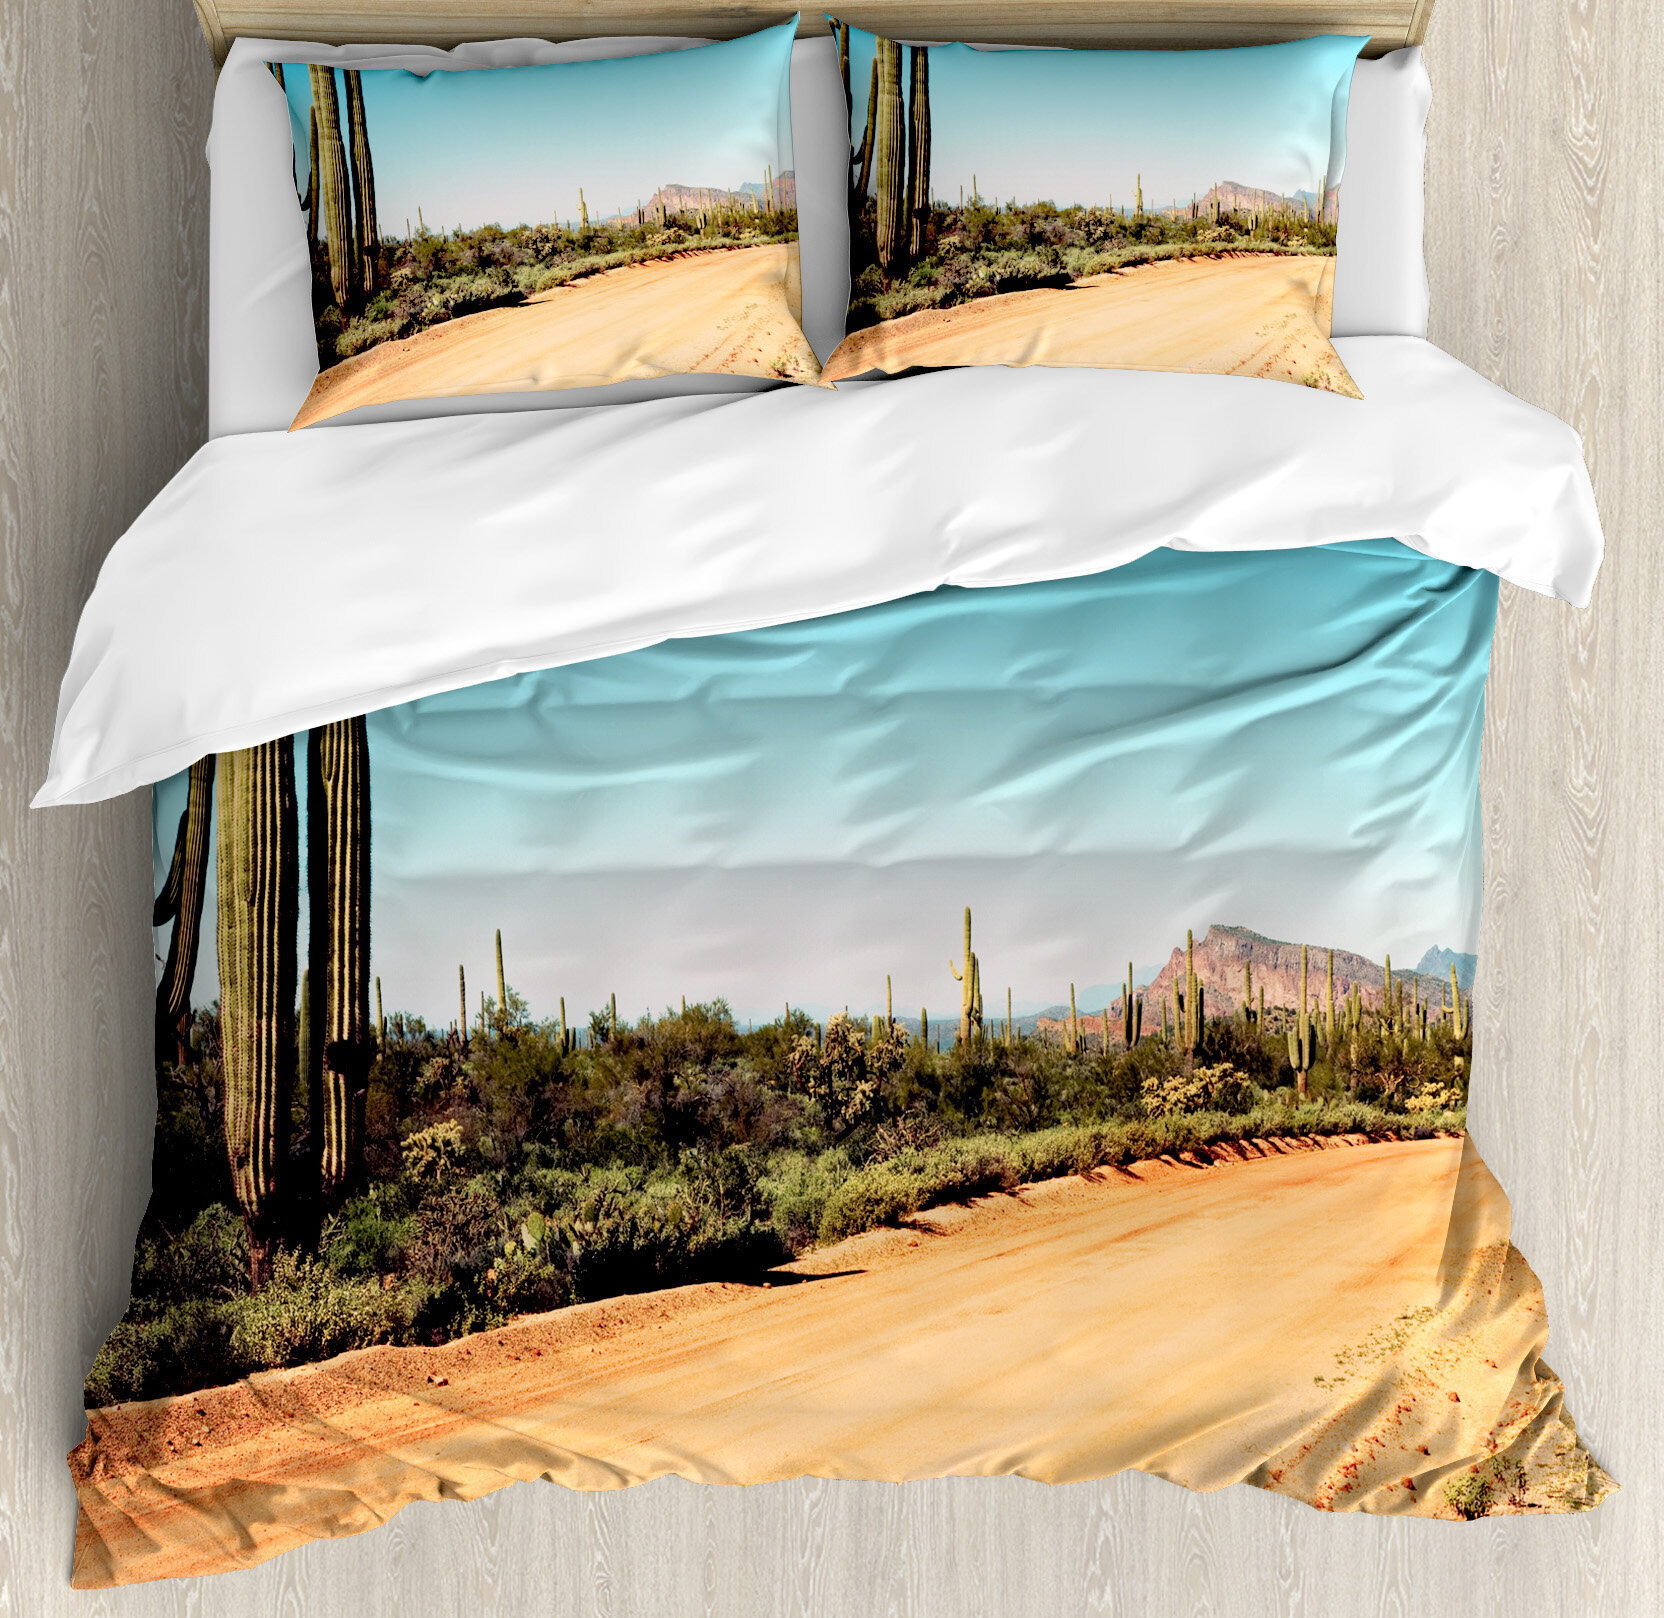 Merveilleux Ambesonne Saguaro Cactus Earth Path With Giant Cactus Plants To The South  American Desert Picture Duvet Cover Set | Wayfair